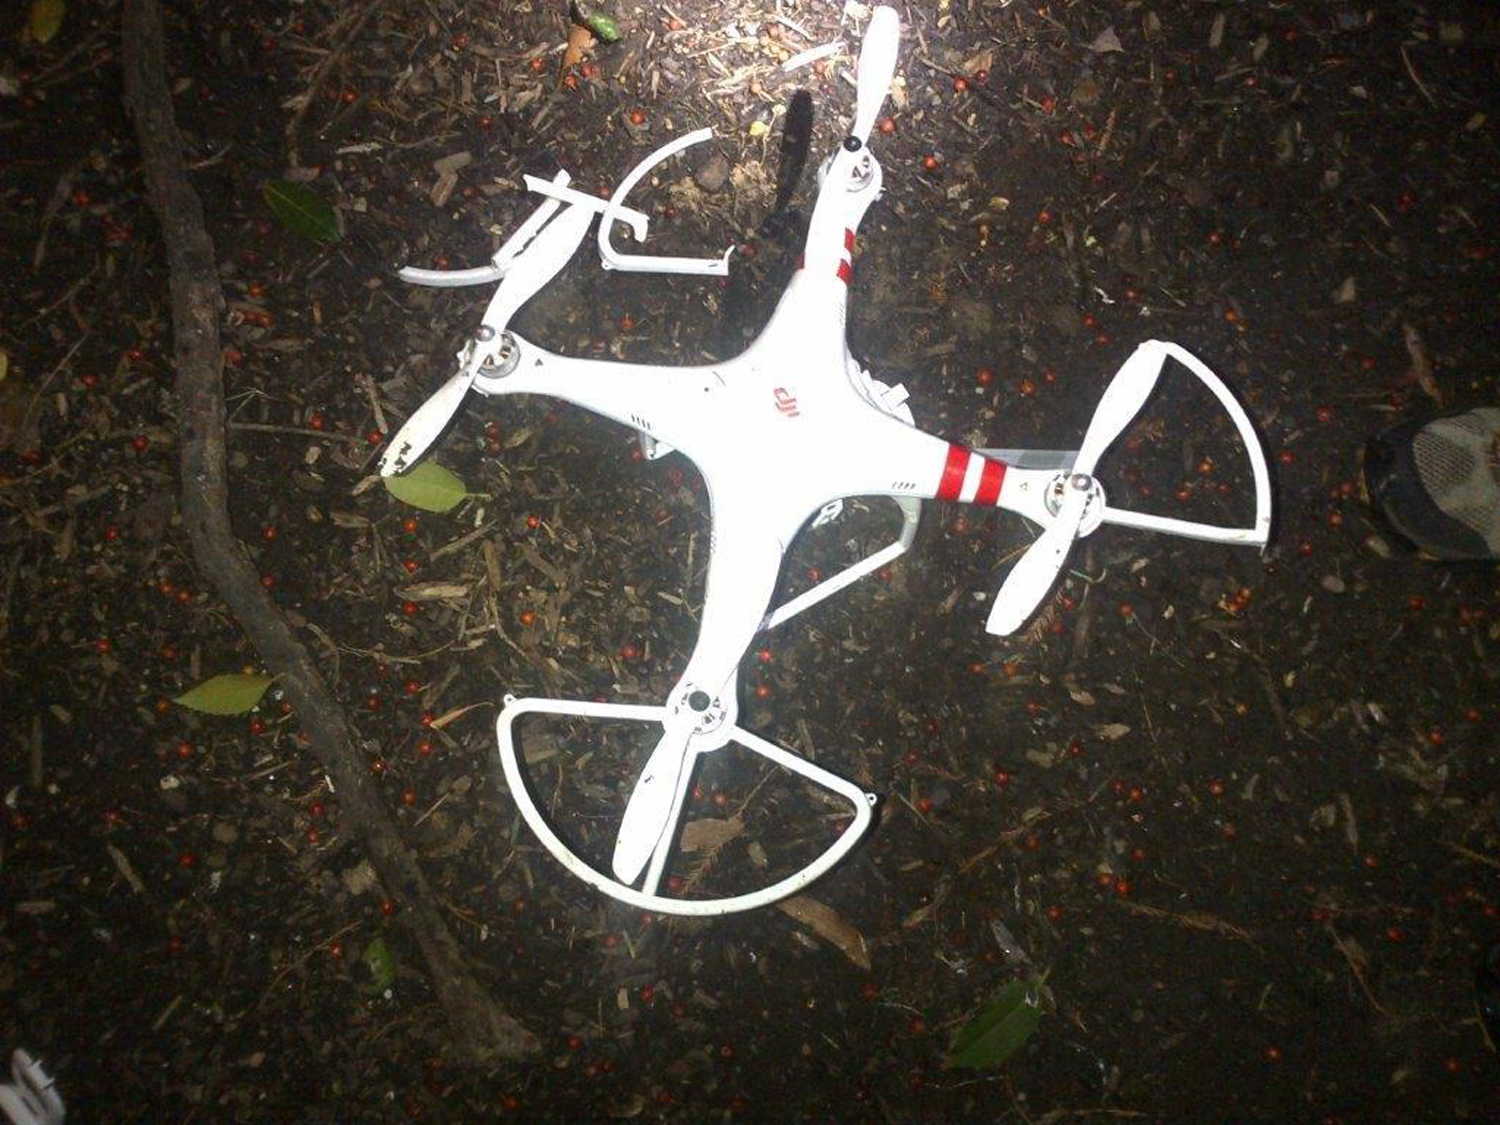 The DJI Phantom drone that crashed on the lawn of the White House. Its pilot was drunk at the time